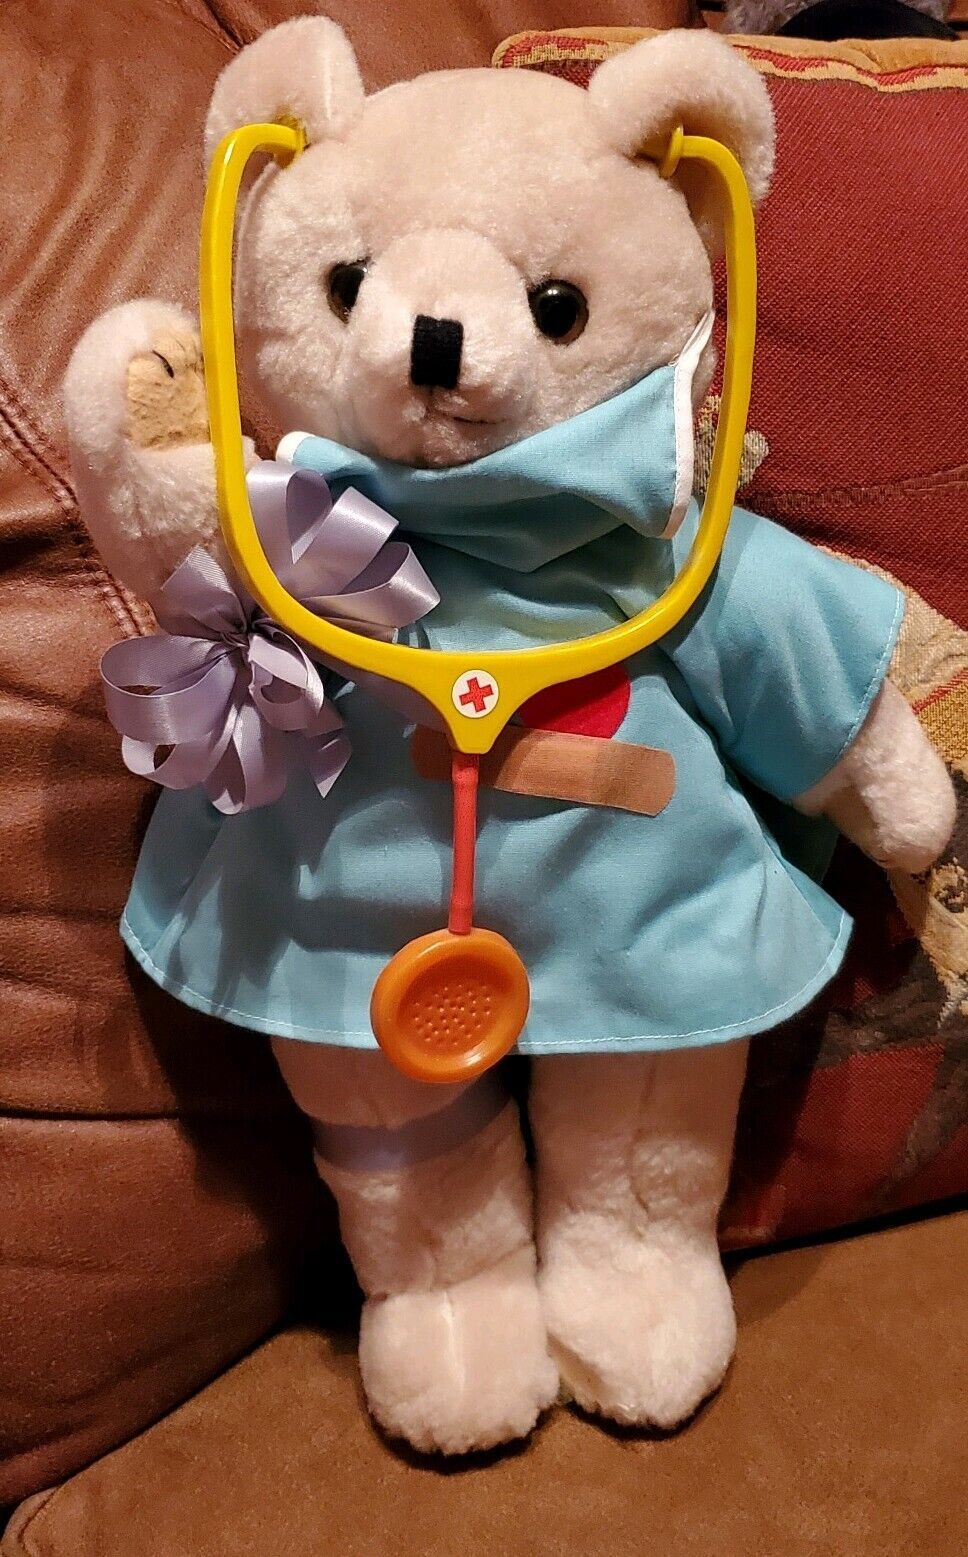 Vintage Teddy Bear Surgeon Doctor Scrubs nurse stethoscope healthcare gift